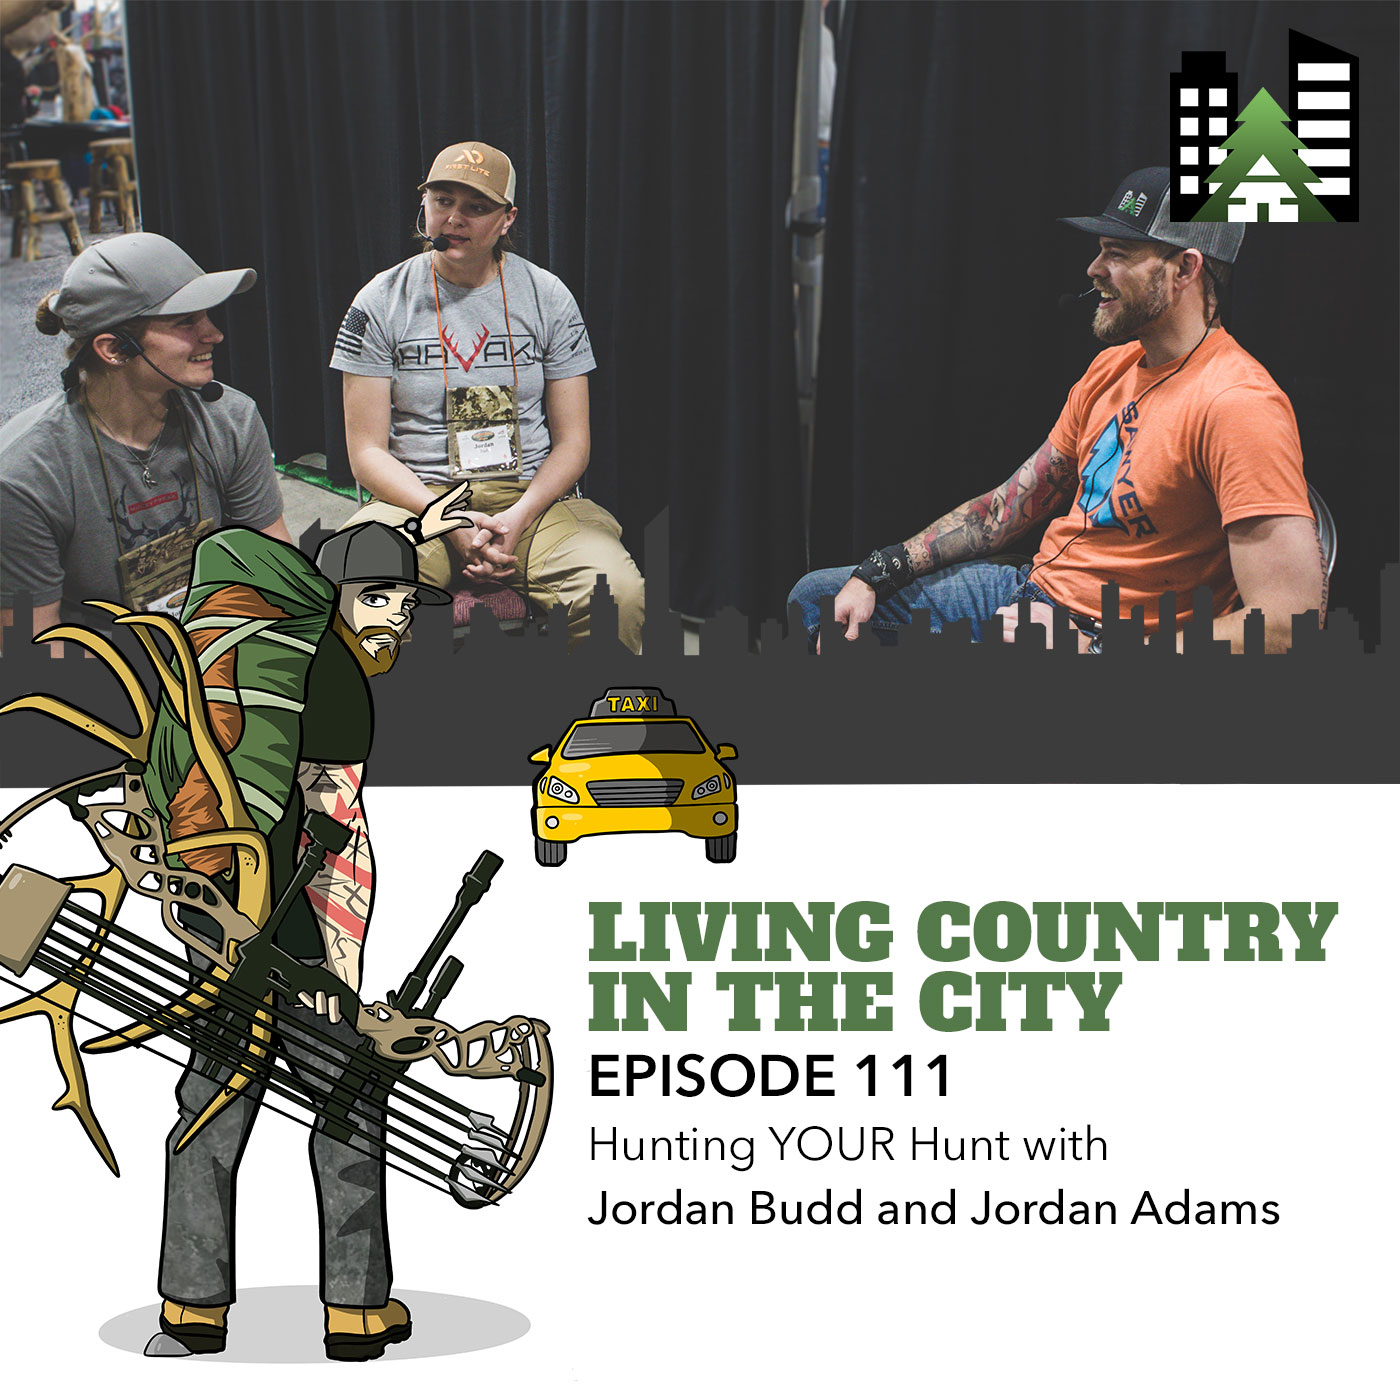 Living Country in the City - Episode 111 - Hunting YOUR Hunt with Jordan Budd and Jordan Adams